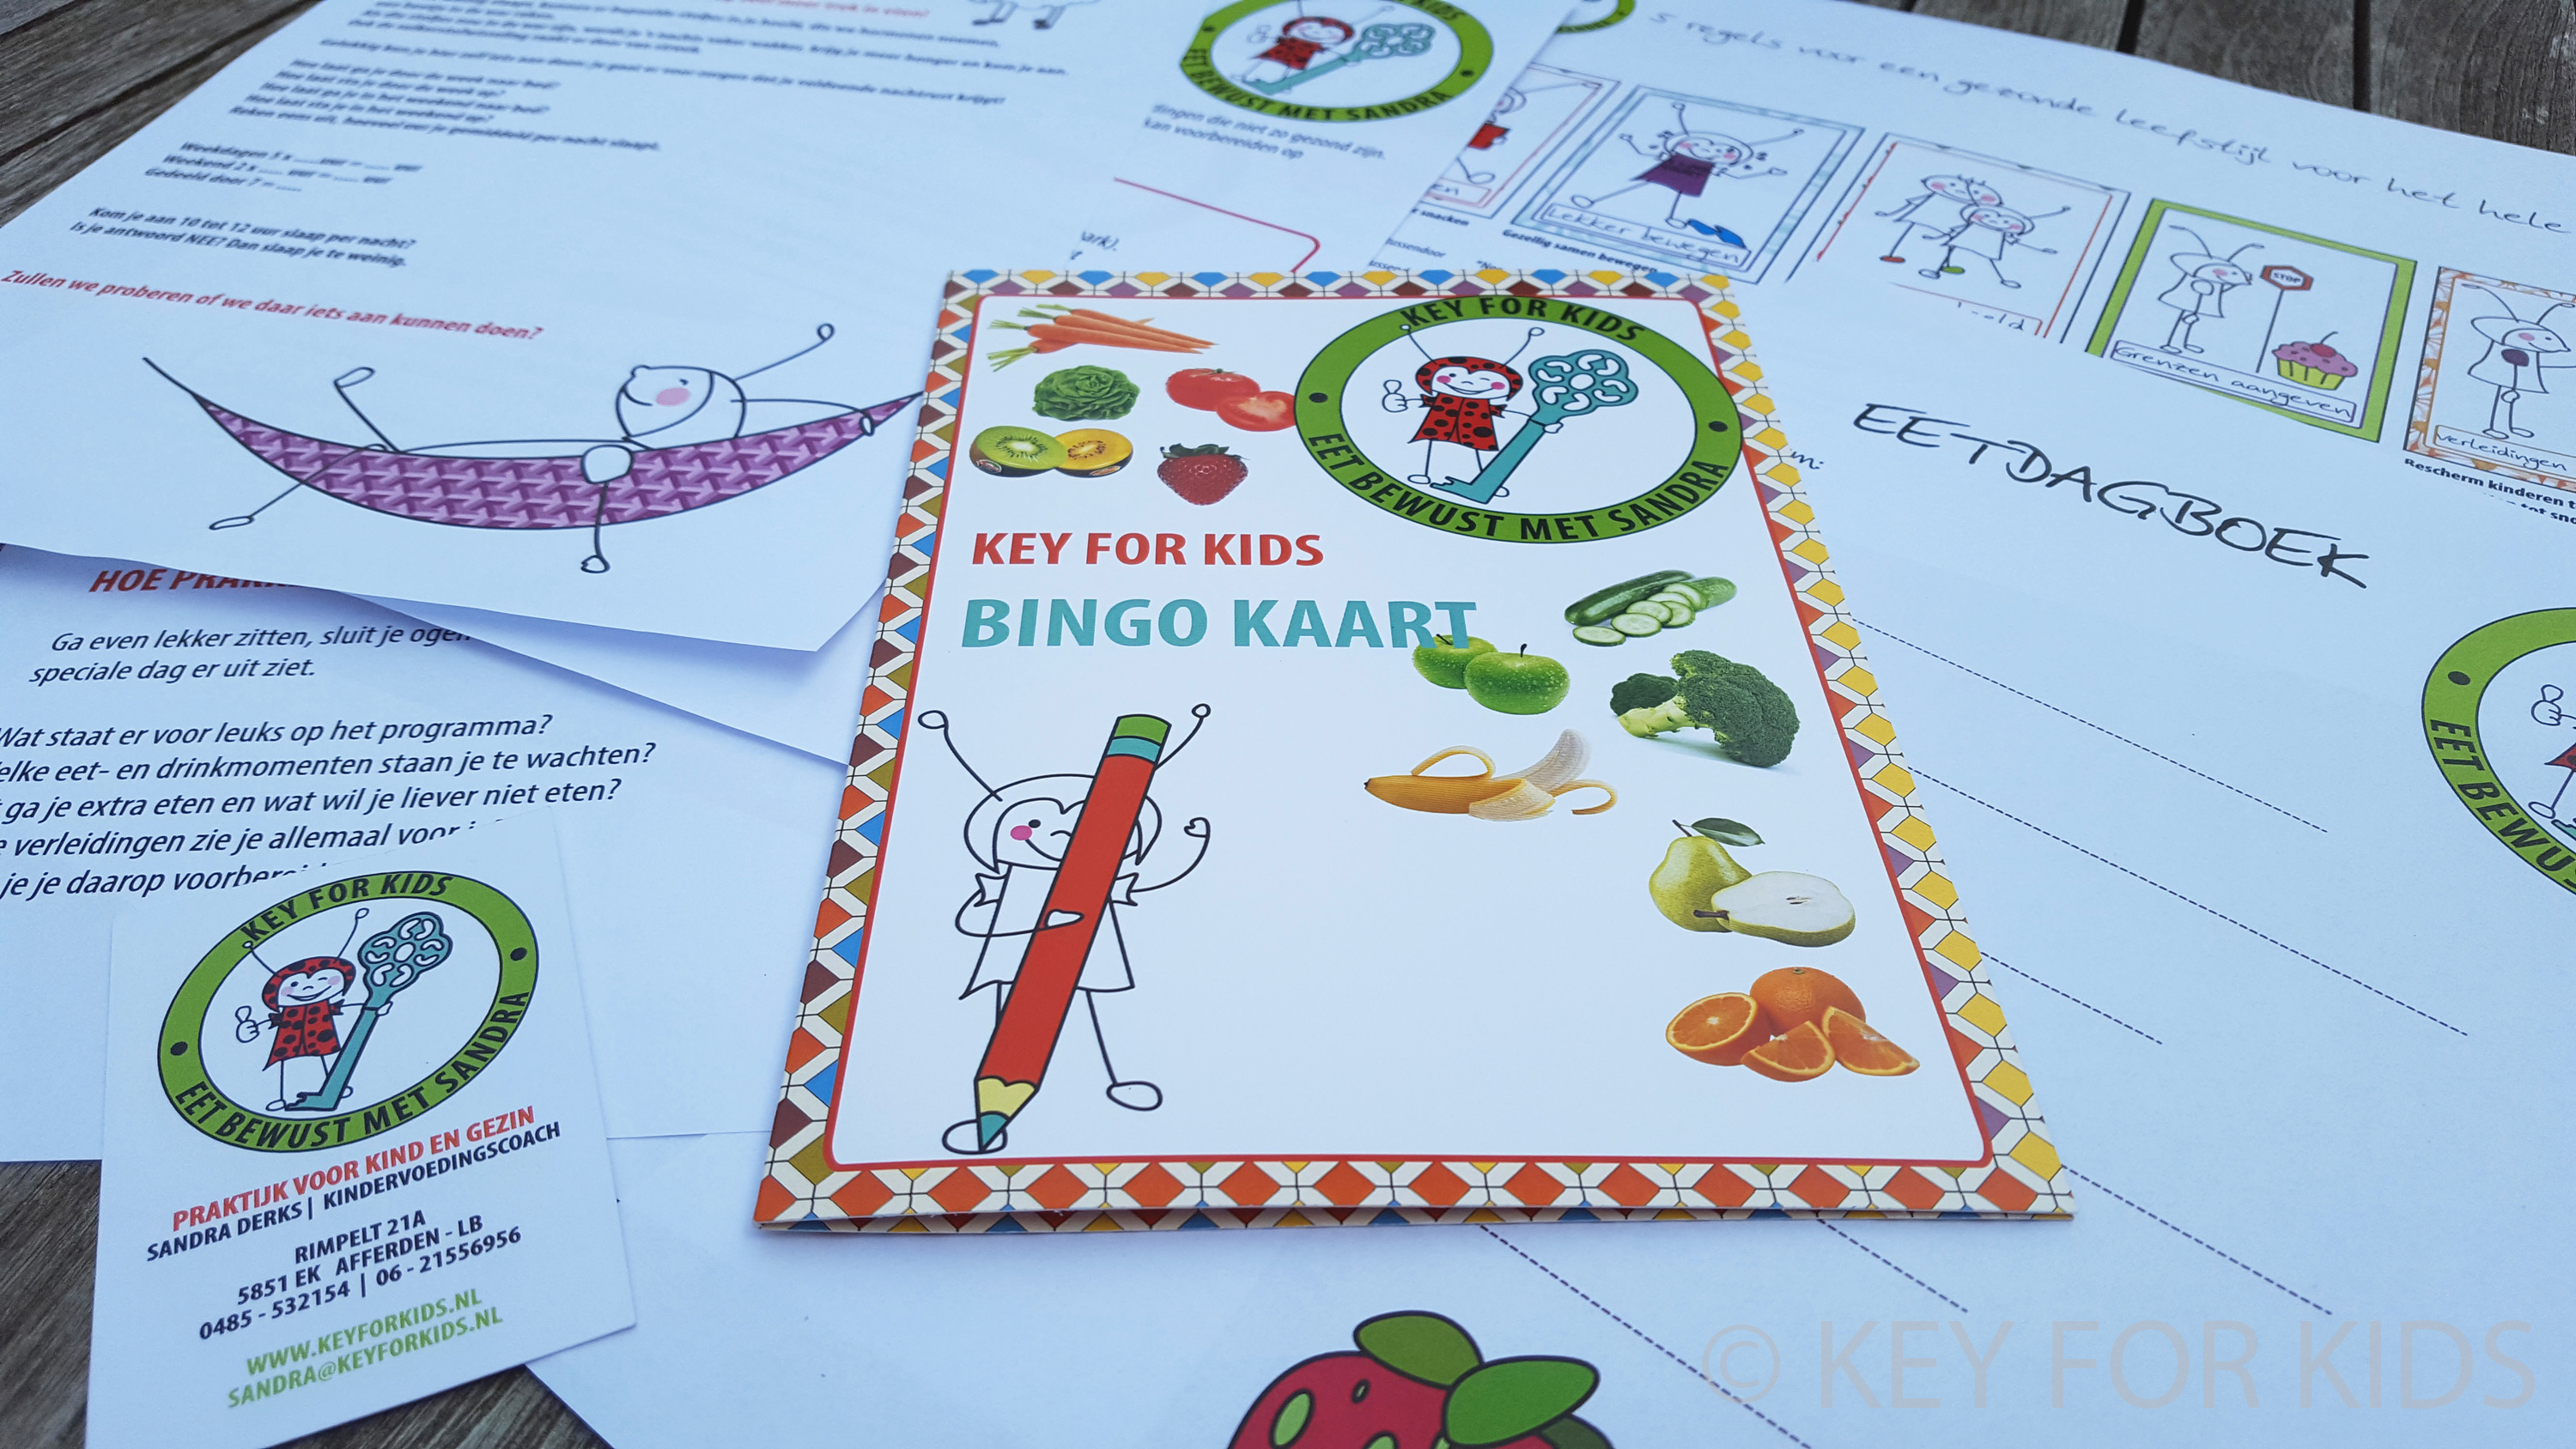 De Key For Kids bingokaart